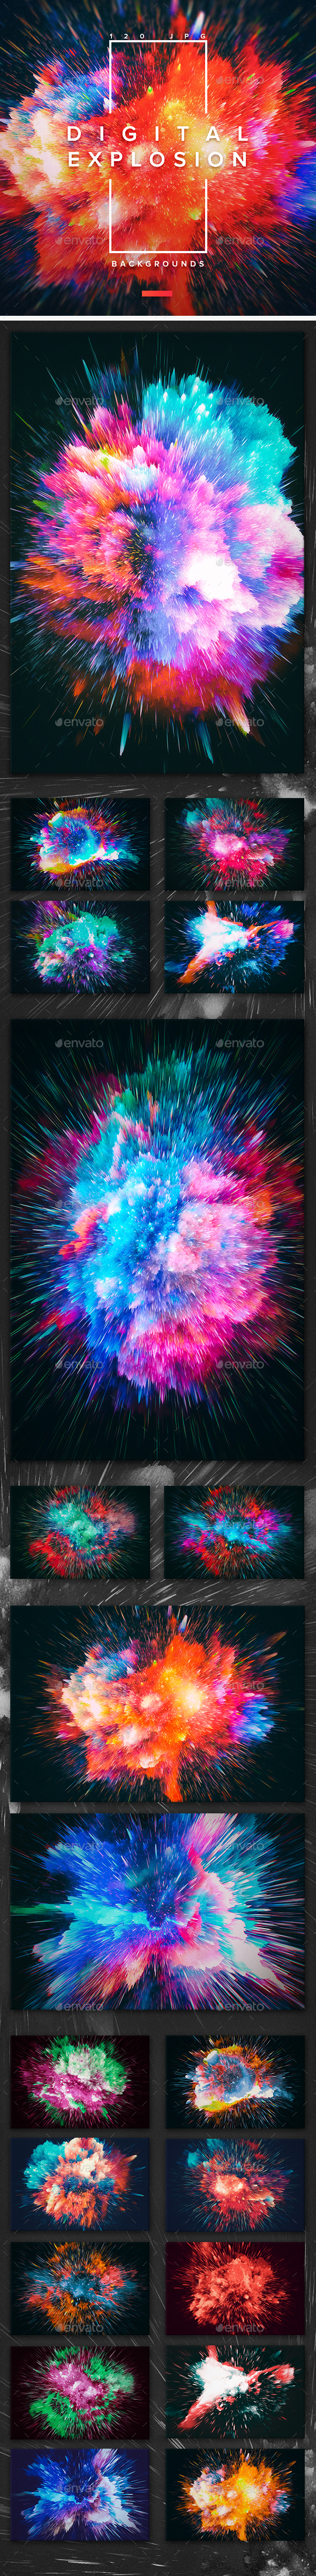 120 Digital Explosion Backgrounds - Abstract Backgrounds